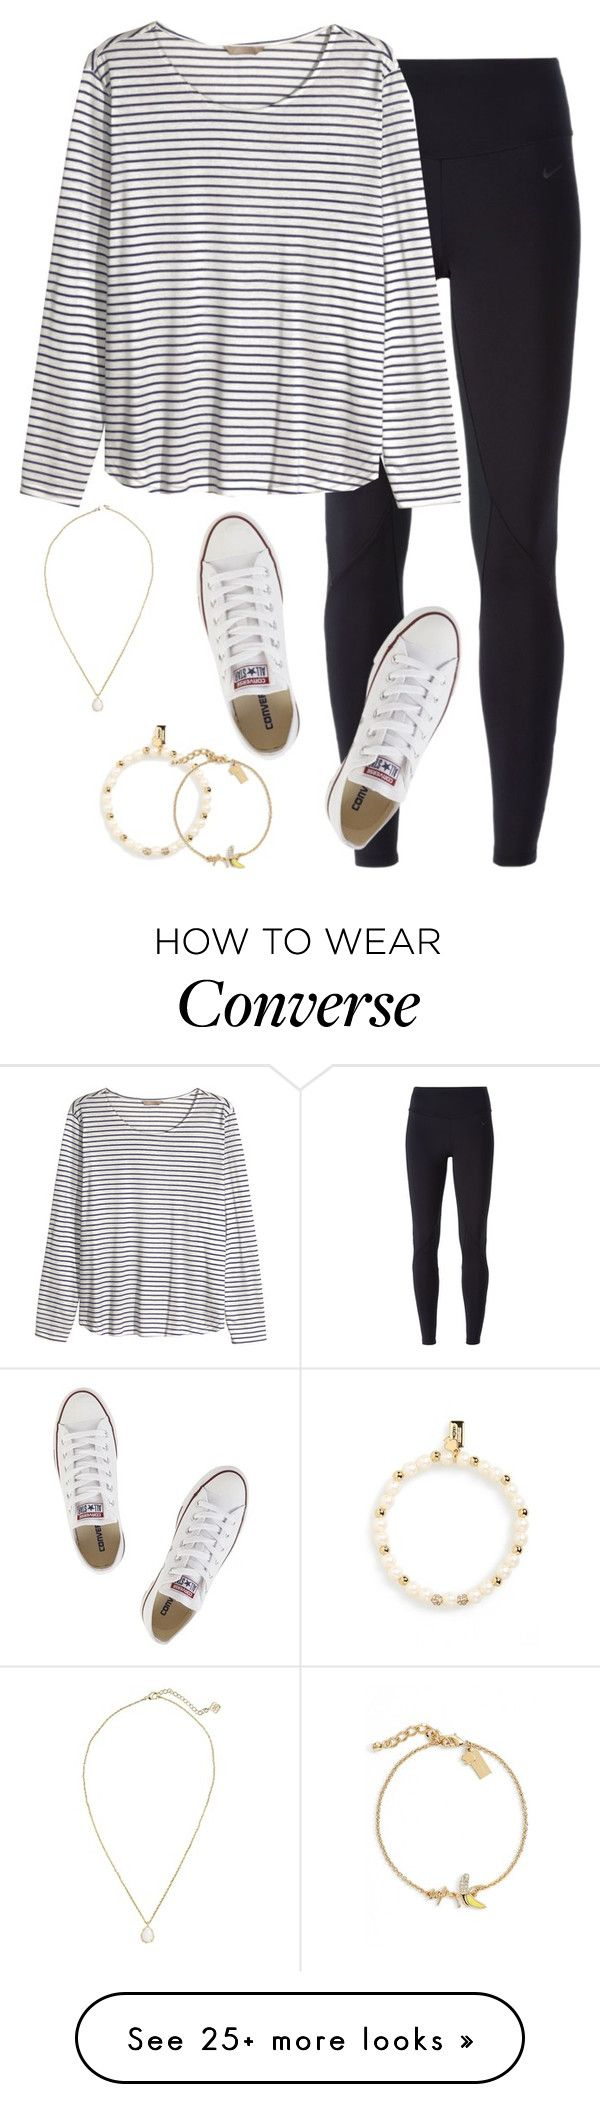 """Never take advantage of life, it can be takin away from you in a blink of an eye"" by keileeen on Polyvore featuring NIKE, H&M, Converse, Kendra Scott and Kate Spade"